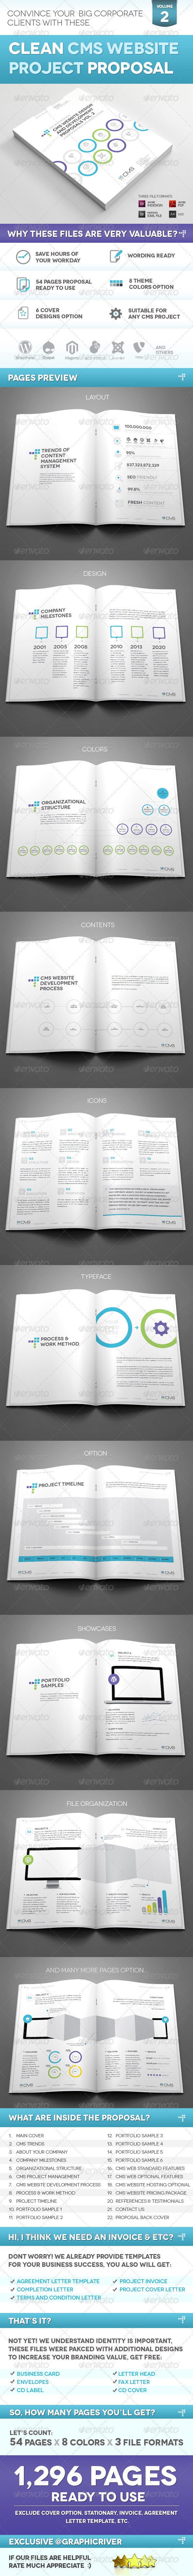 Clean CMS Web Proposal Vol. 2 - Proposals & Invoices Stationery